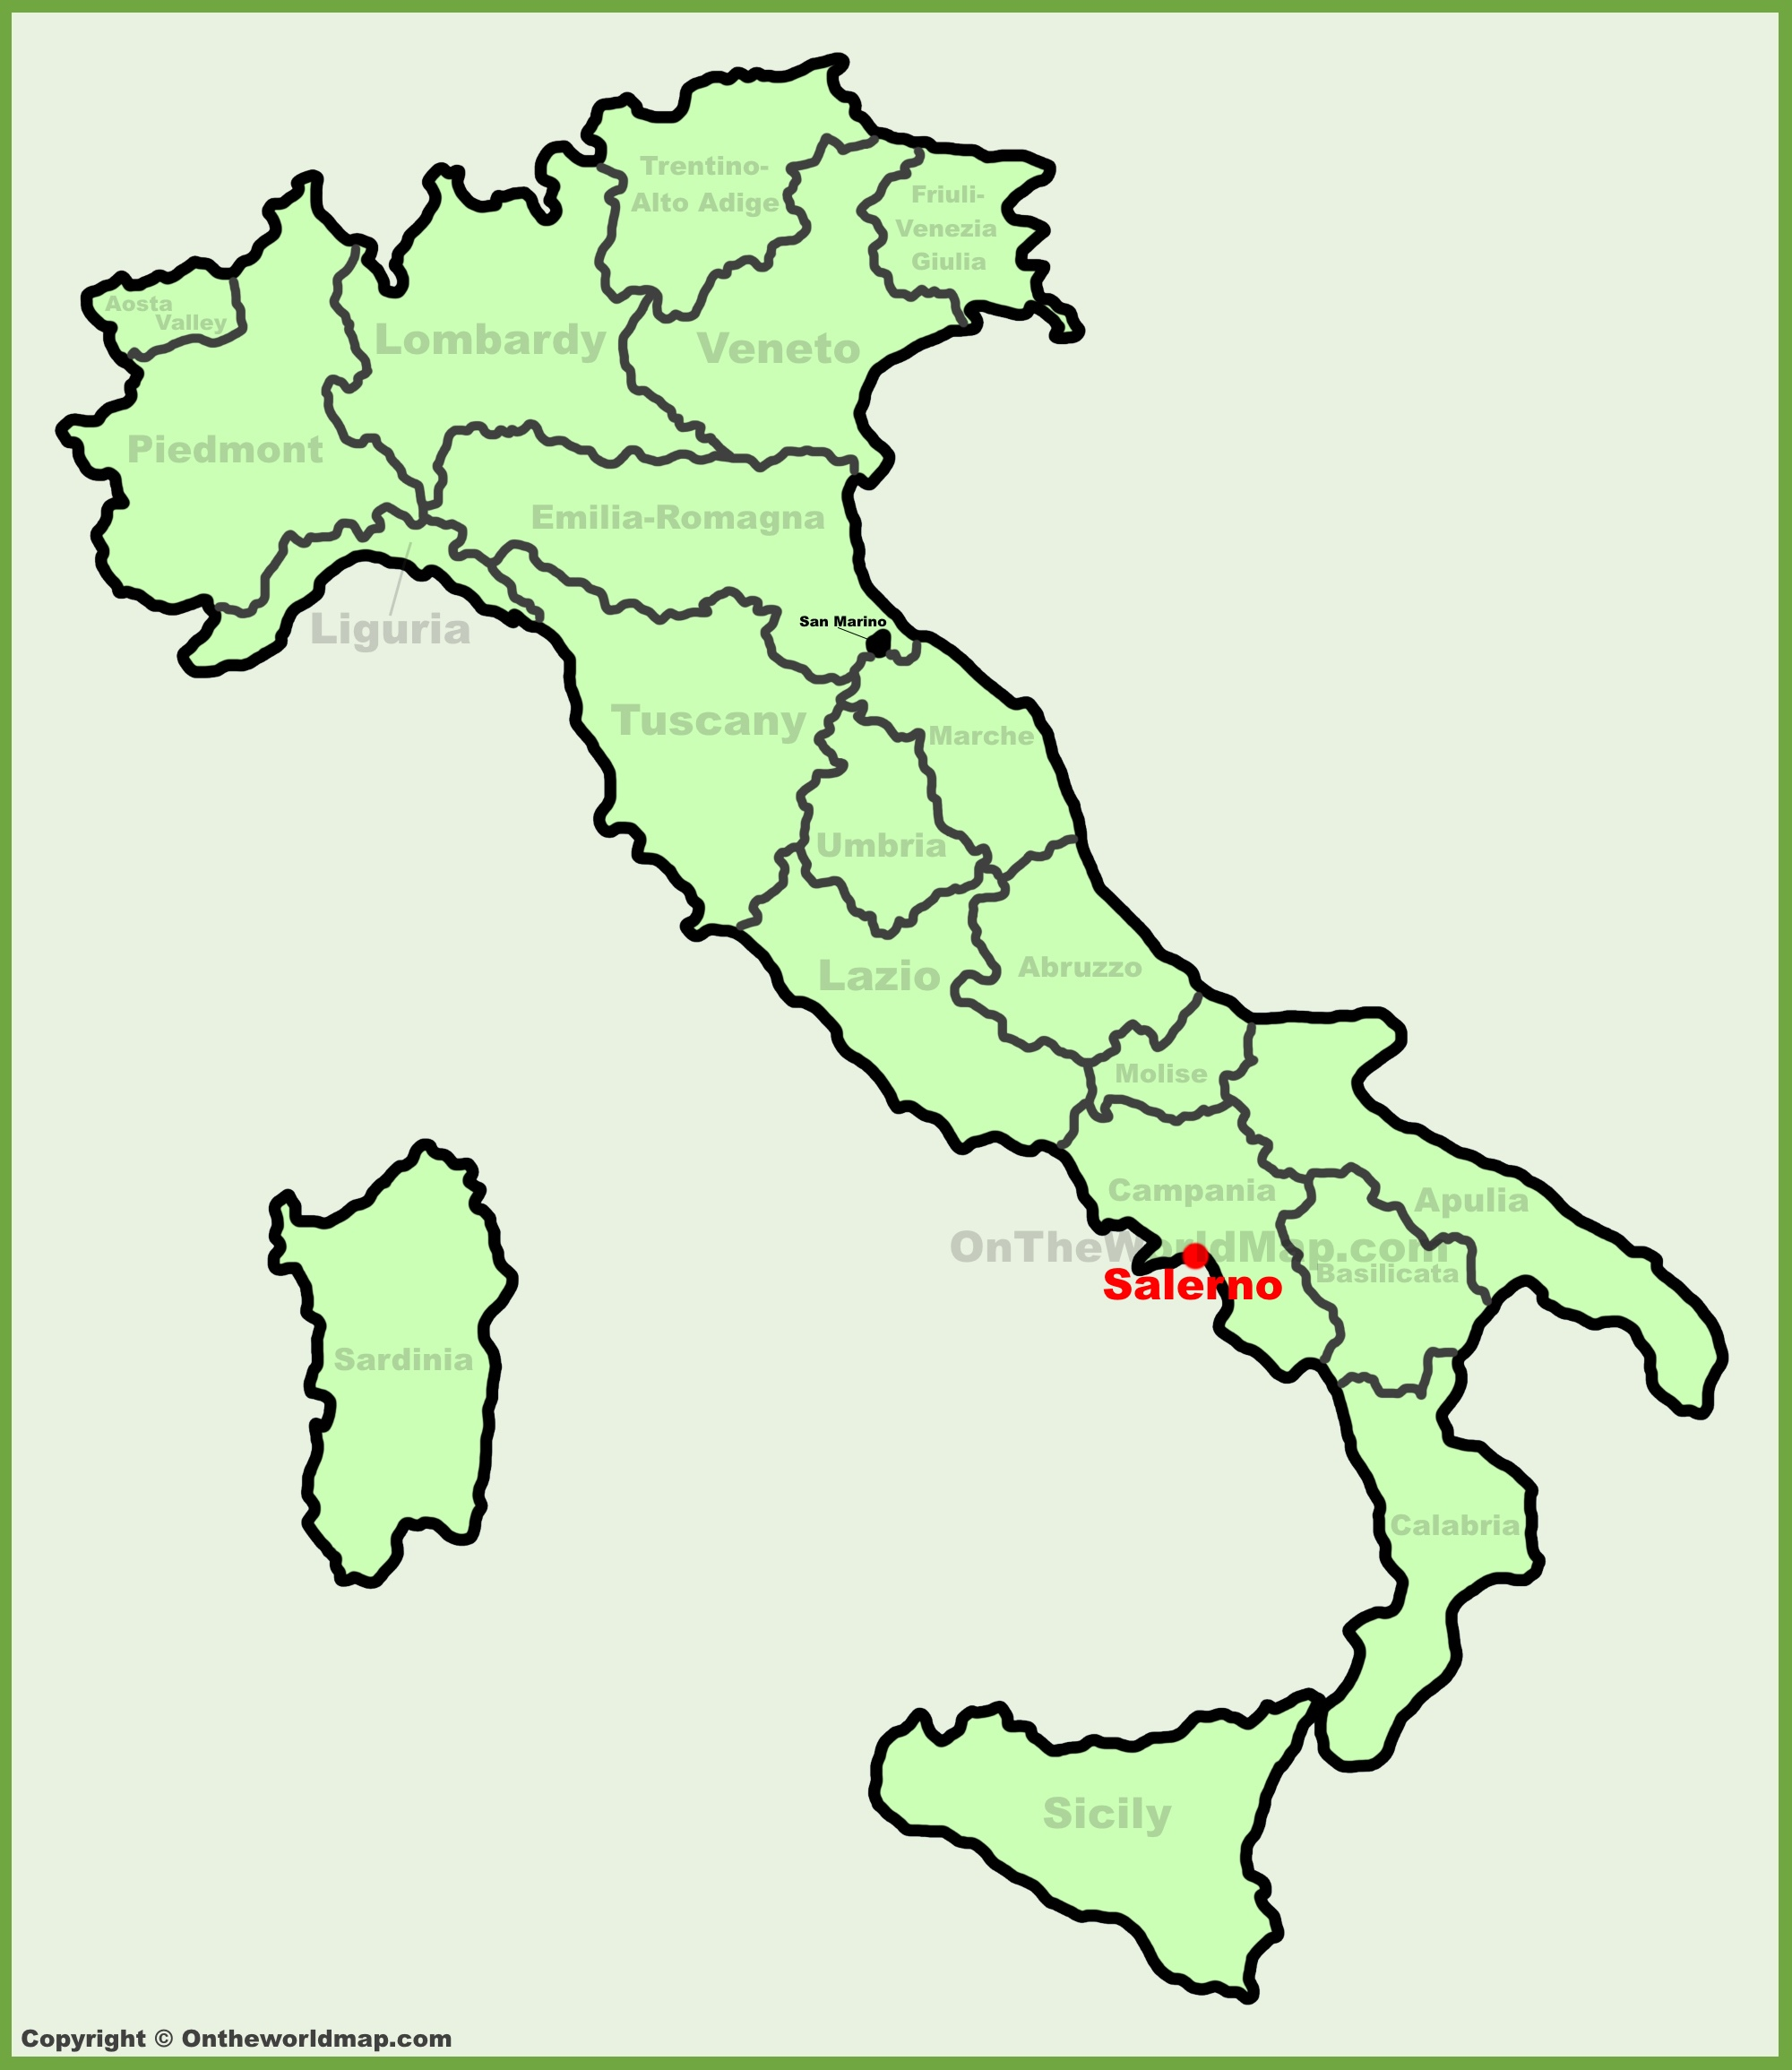 Salerno location on the Italy map